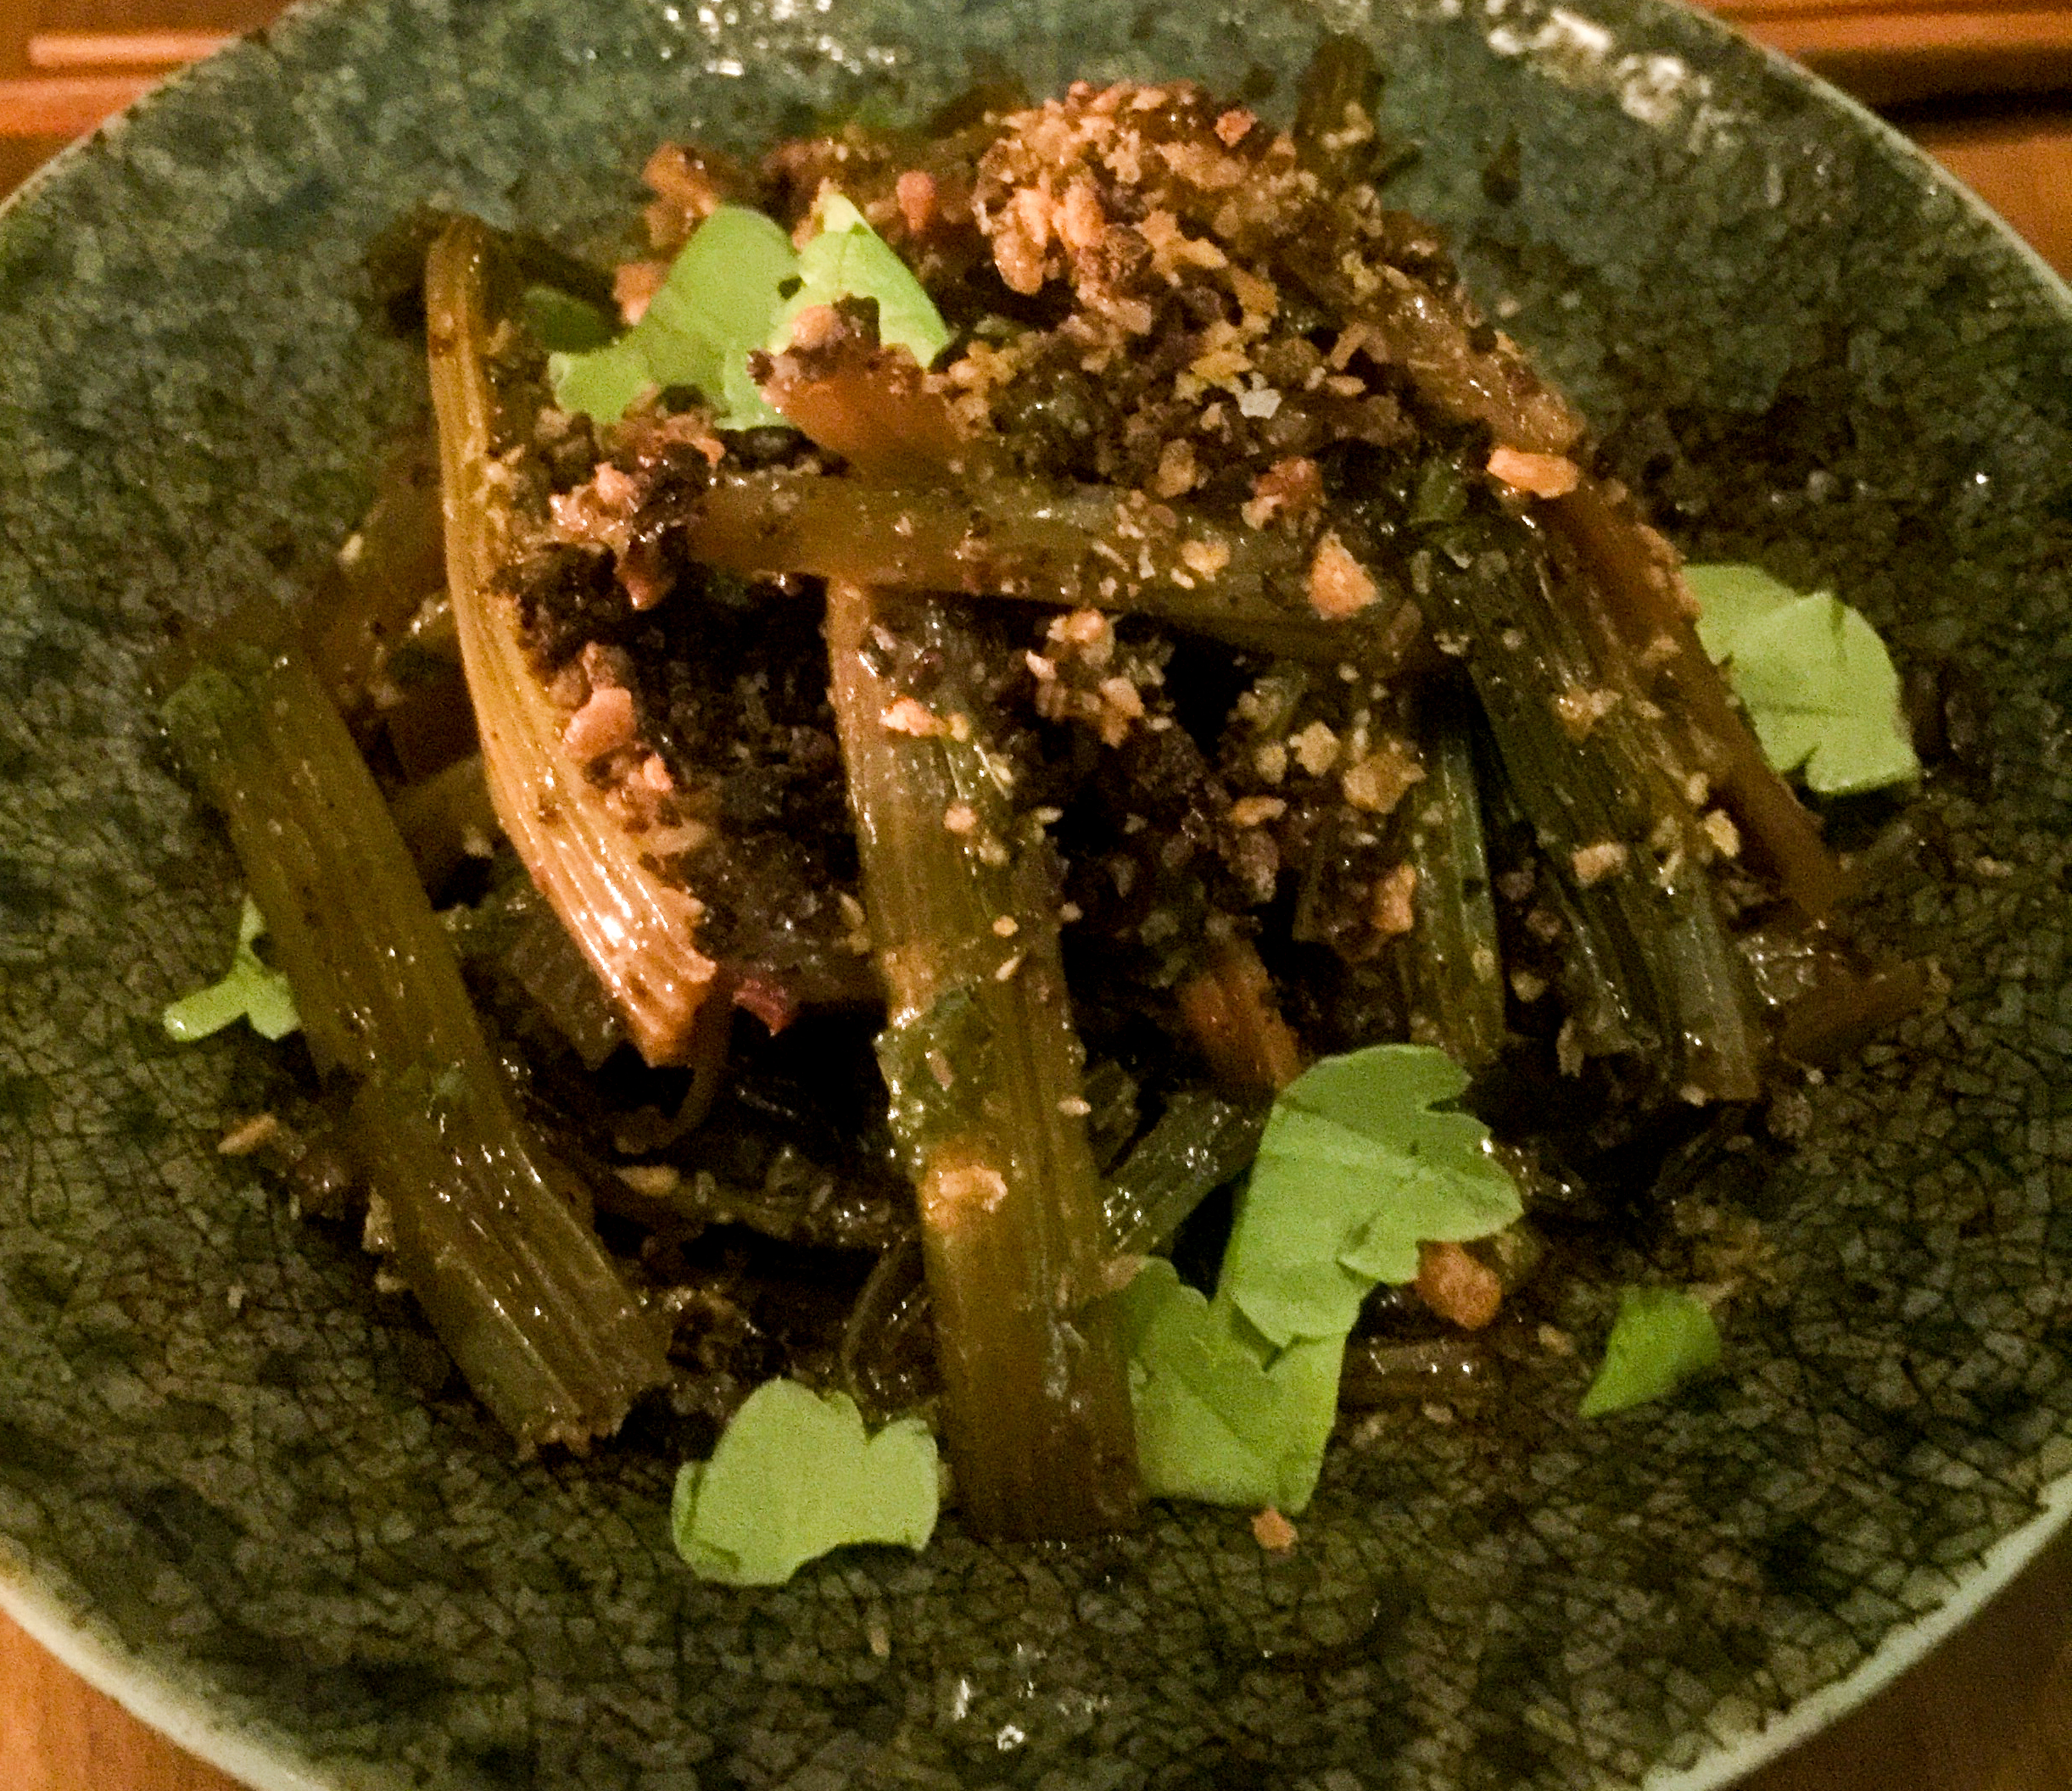 Chinese celery and mushrooms